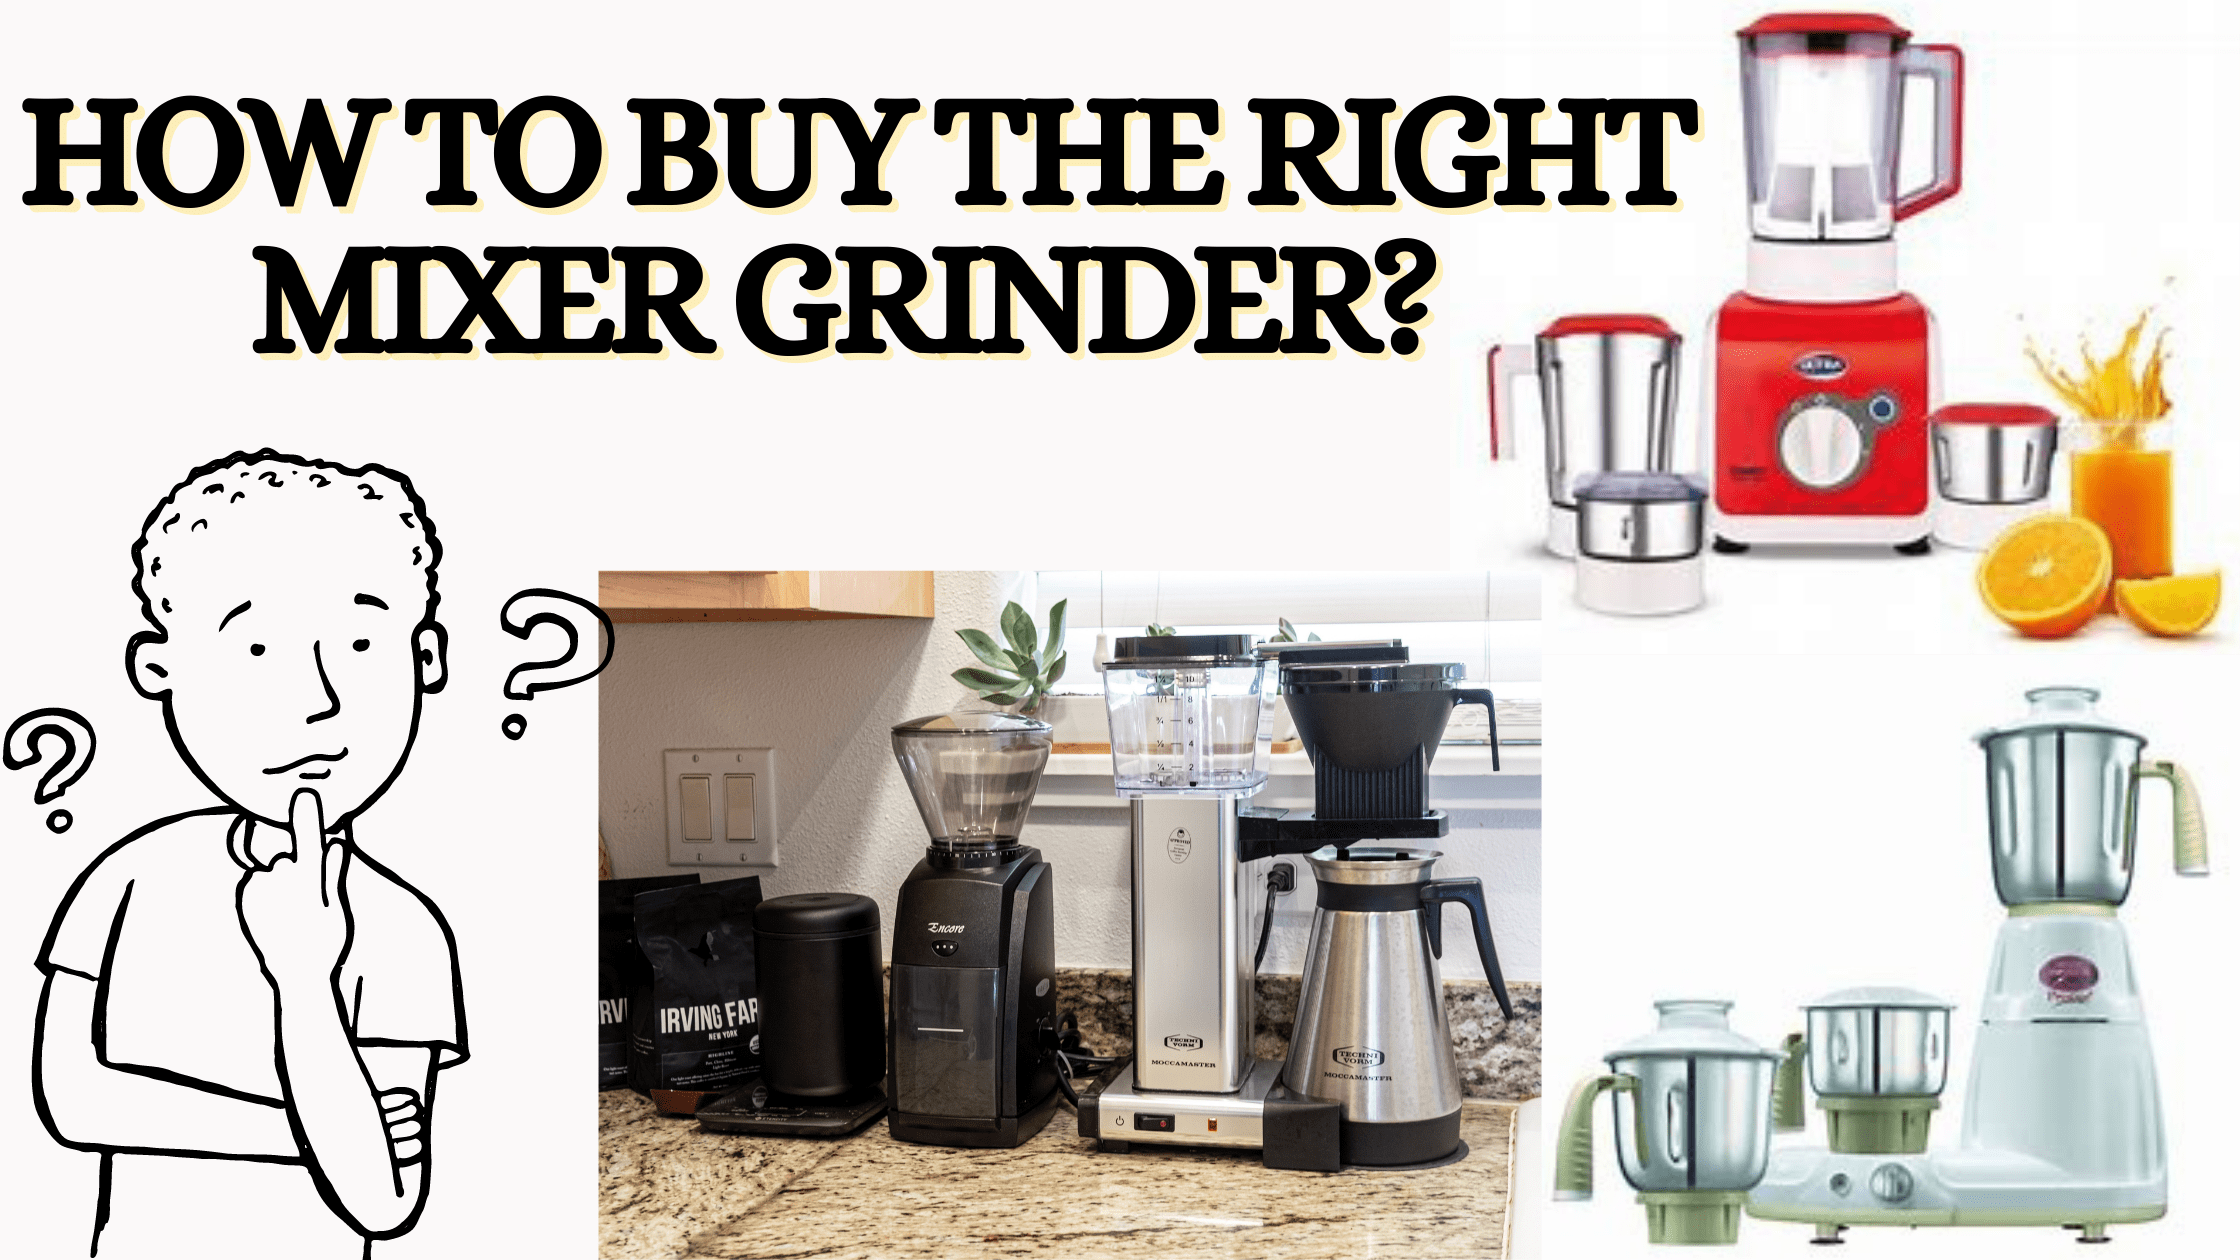 How To Buy The Right Mixer Grinder?